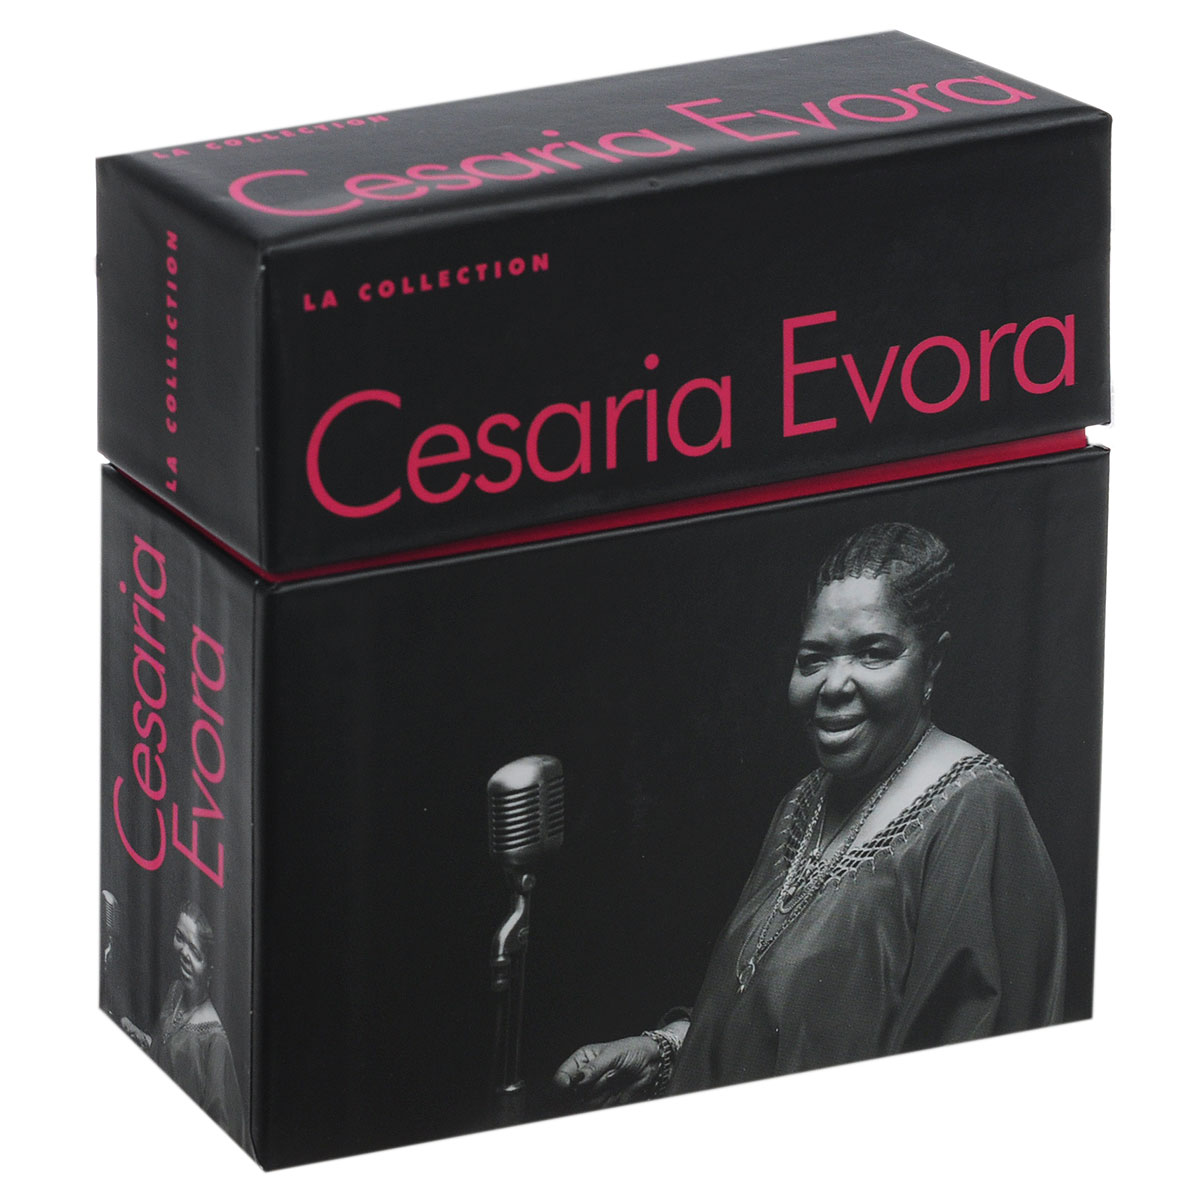 Сезария Эвора Cesaria Evora. La Сollection (6 CD + DVD)